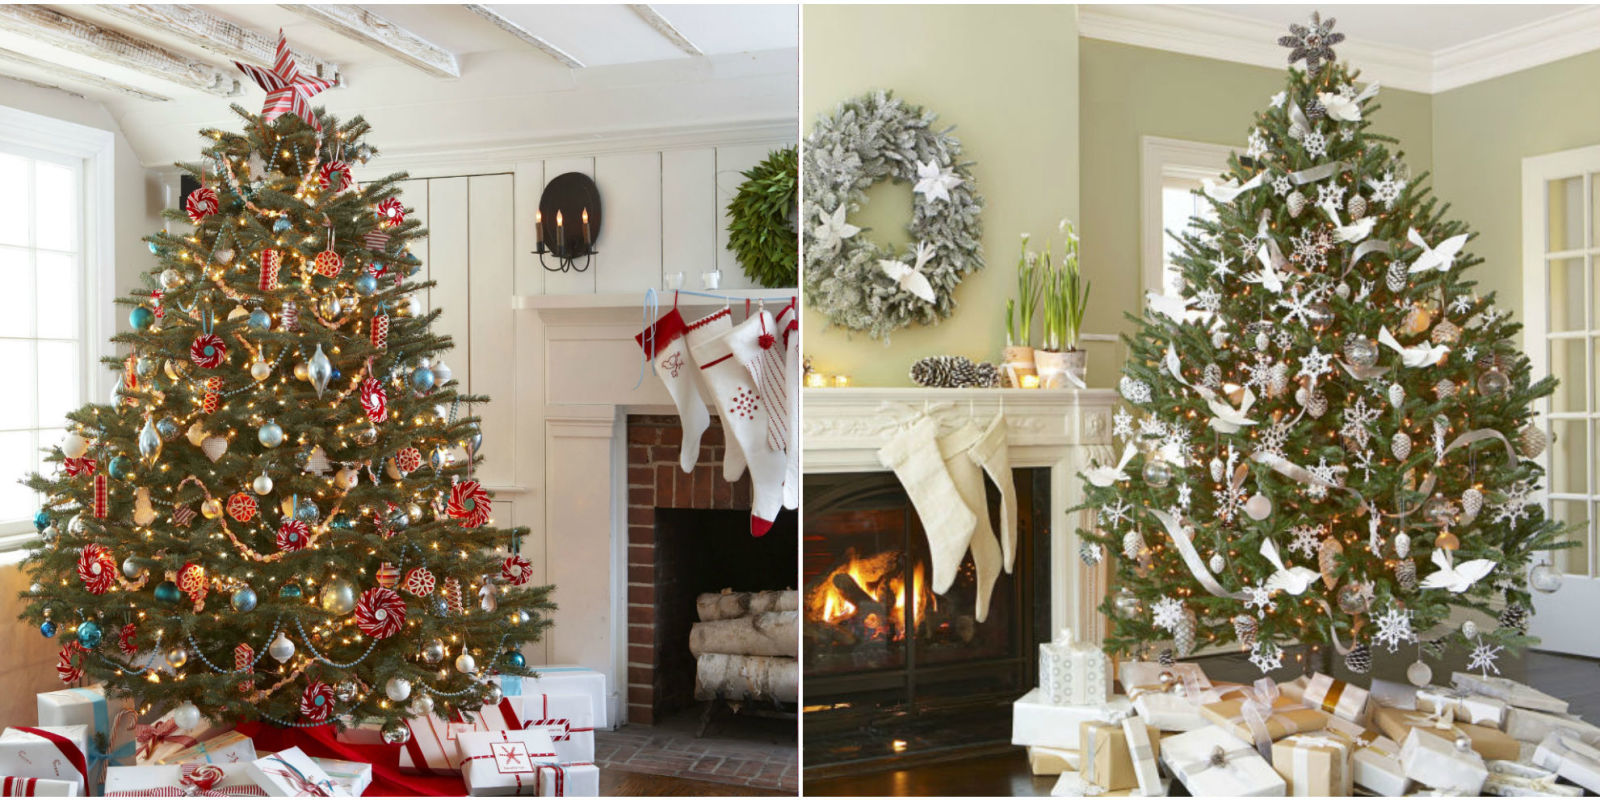 25 Decorated Christmas Tree Ideas